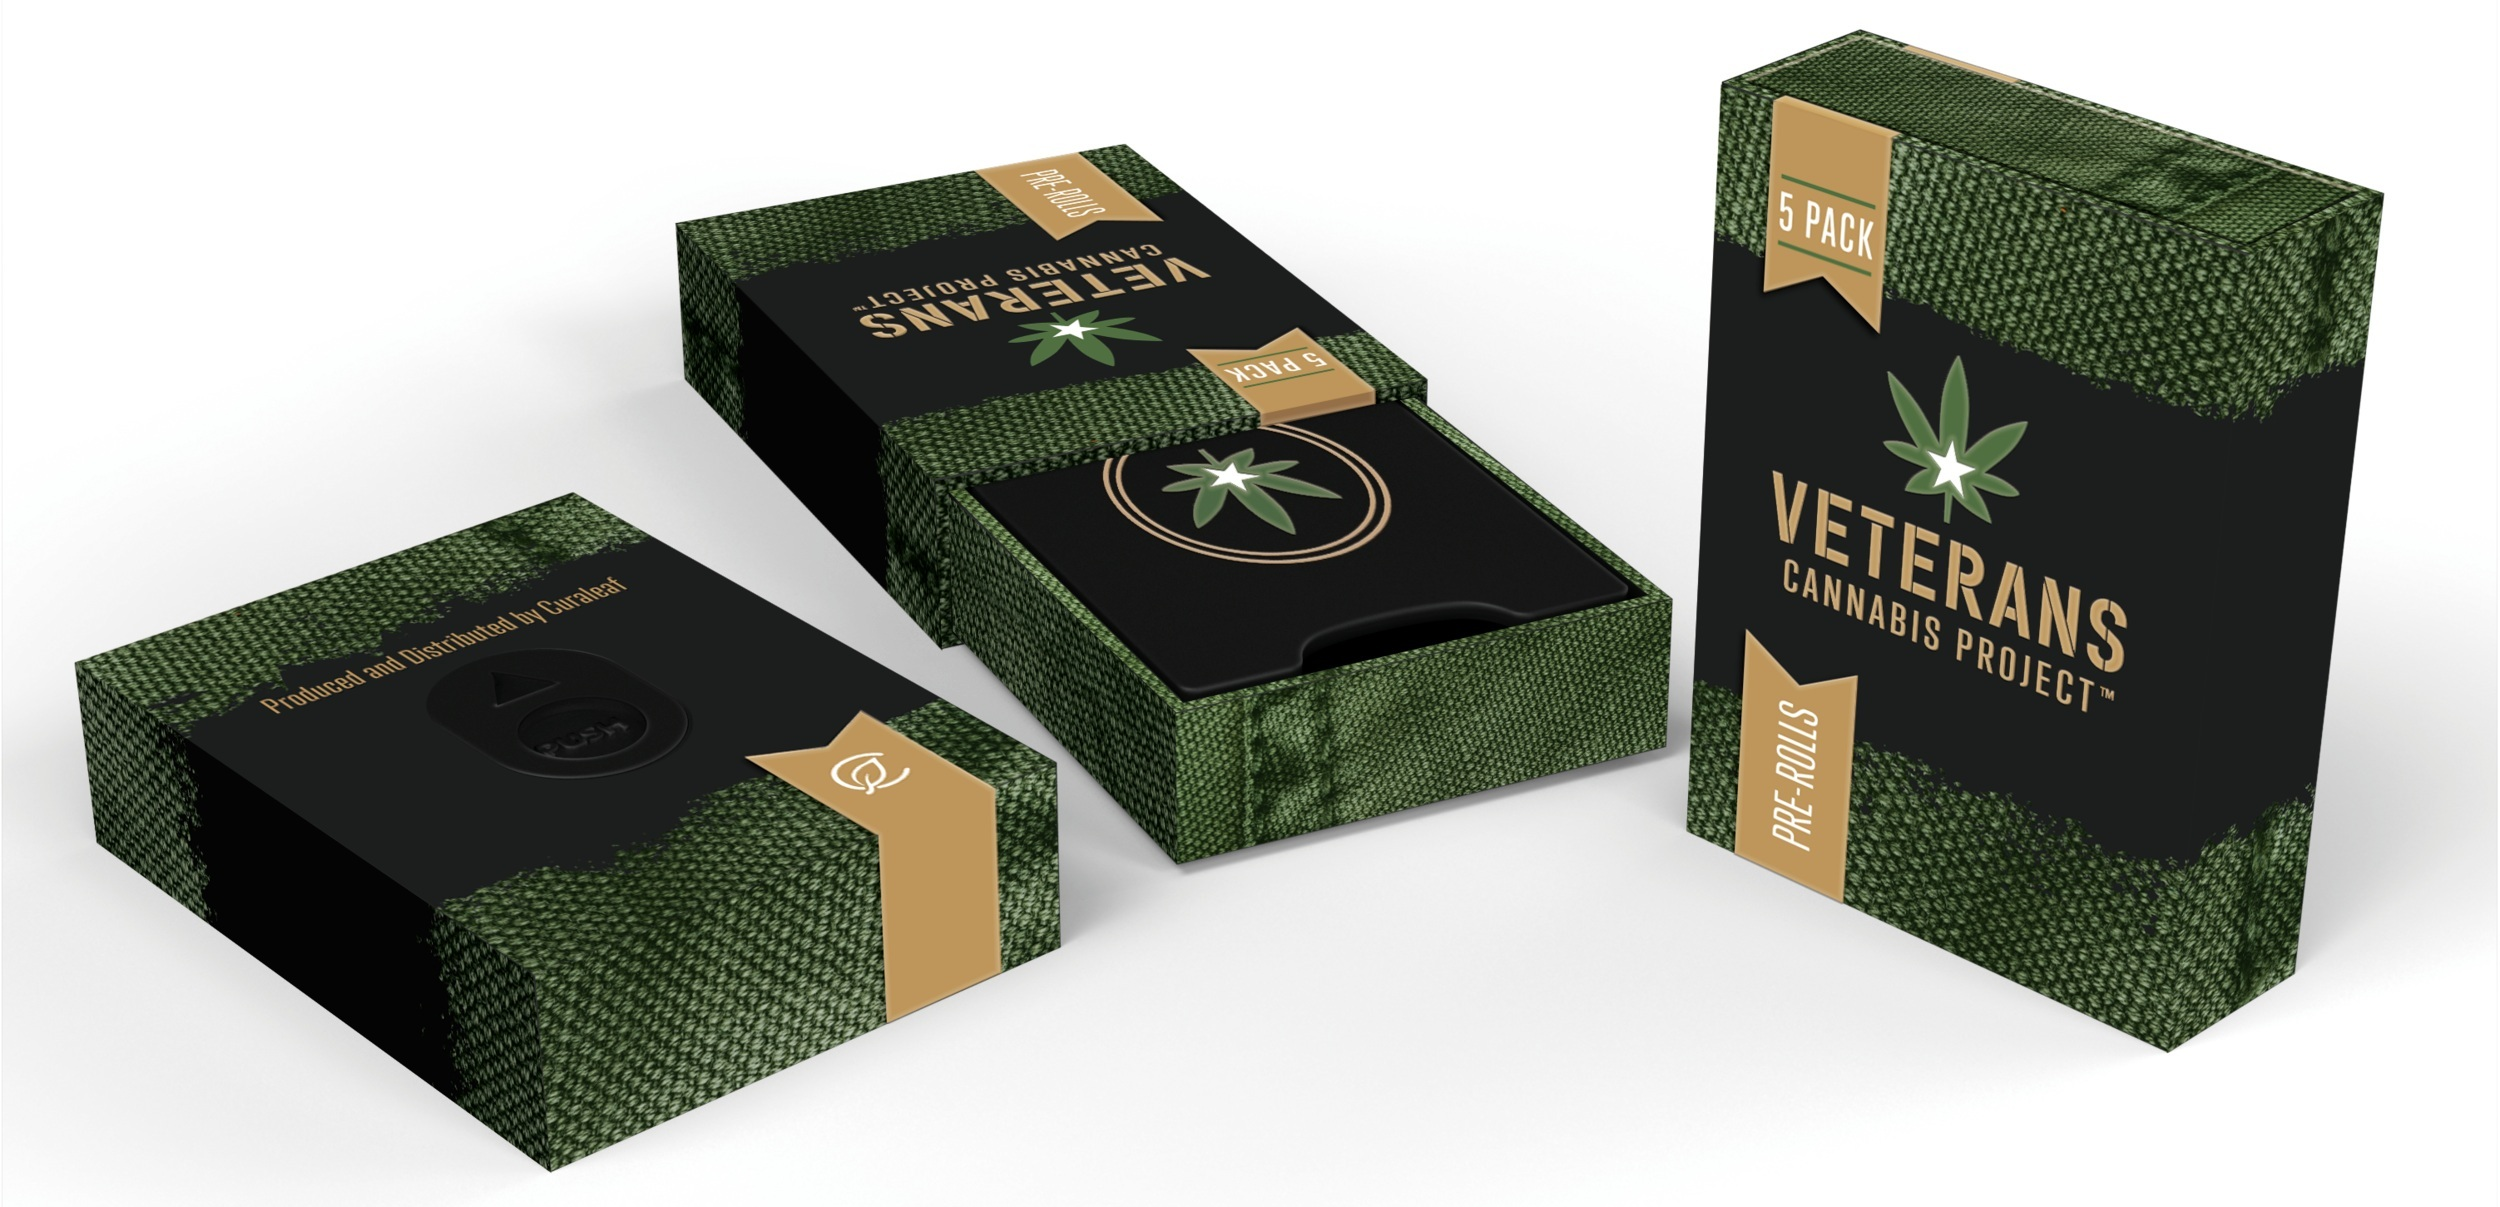 50% off VCP Pre-Rolls for Veterans - $45 - 3.5G Mini Pre-RollsPromotion applies only to veterans making a purchase on 9/26/19. VA identification required. All other discounts excluded.